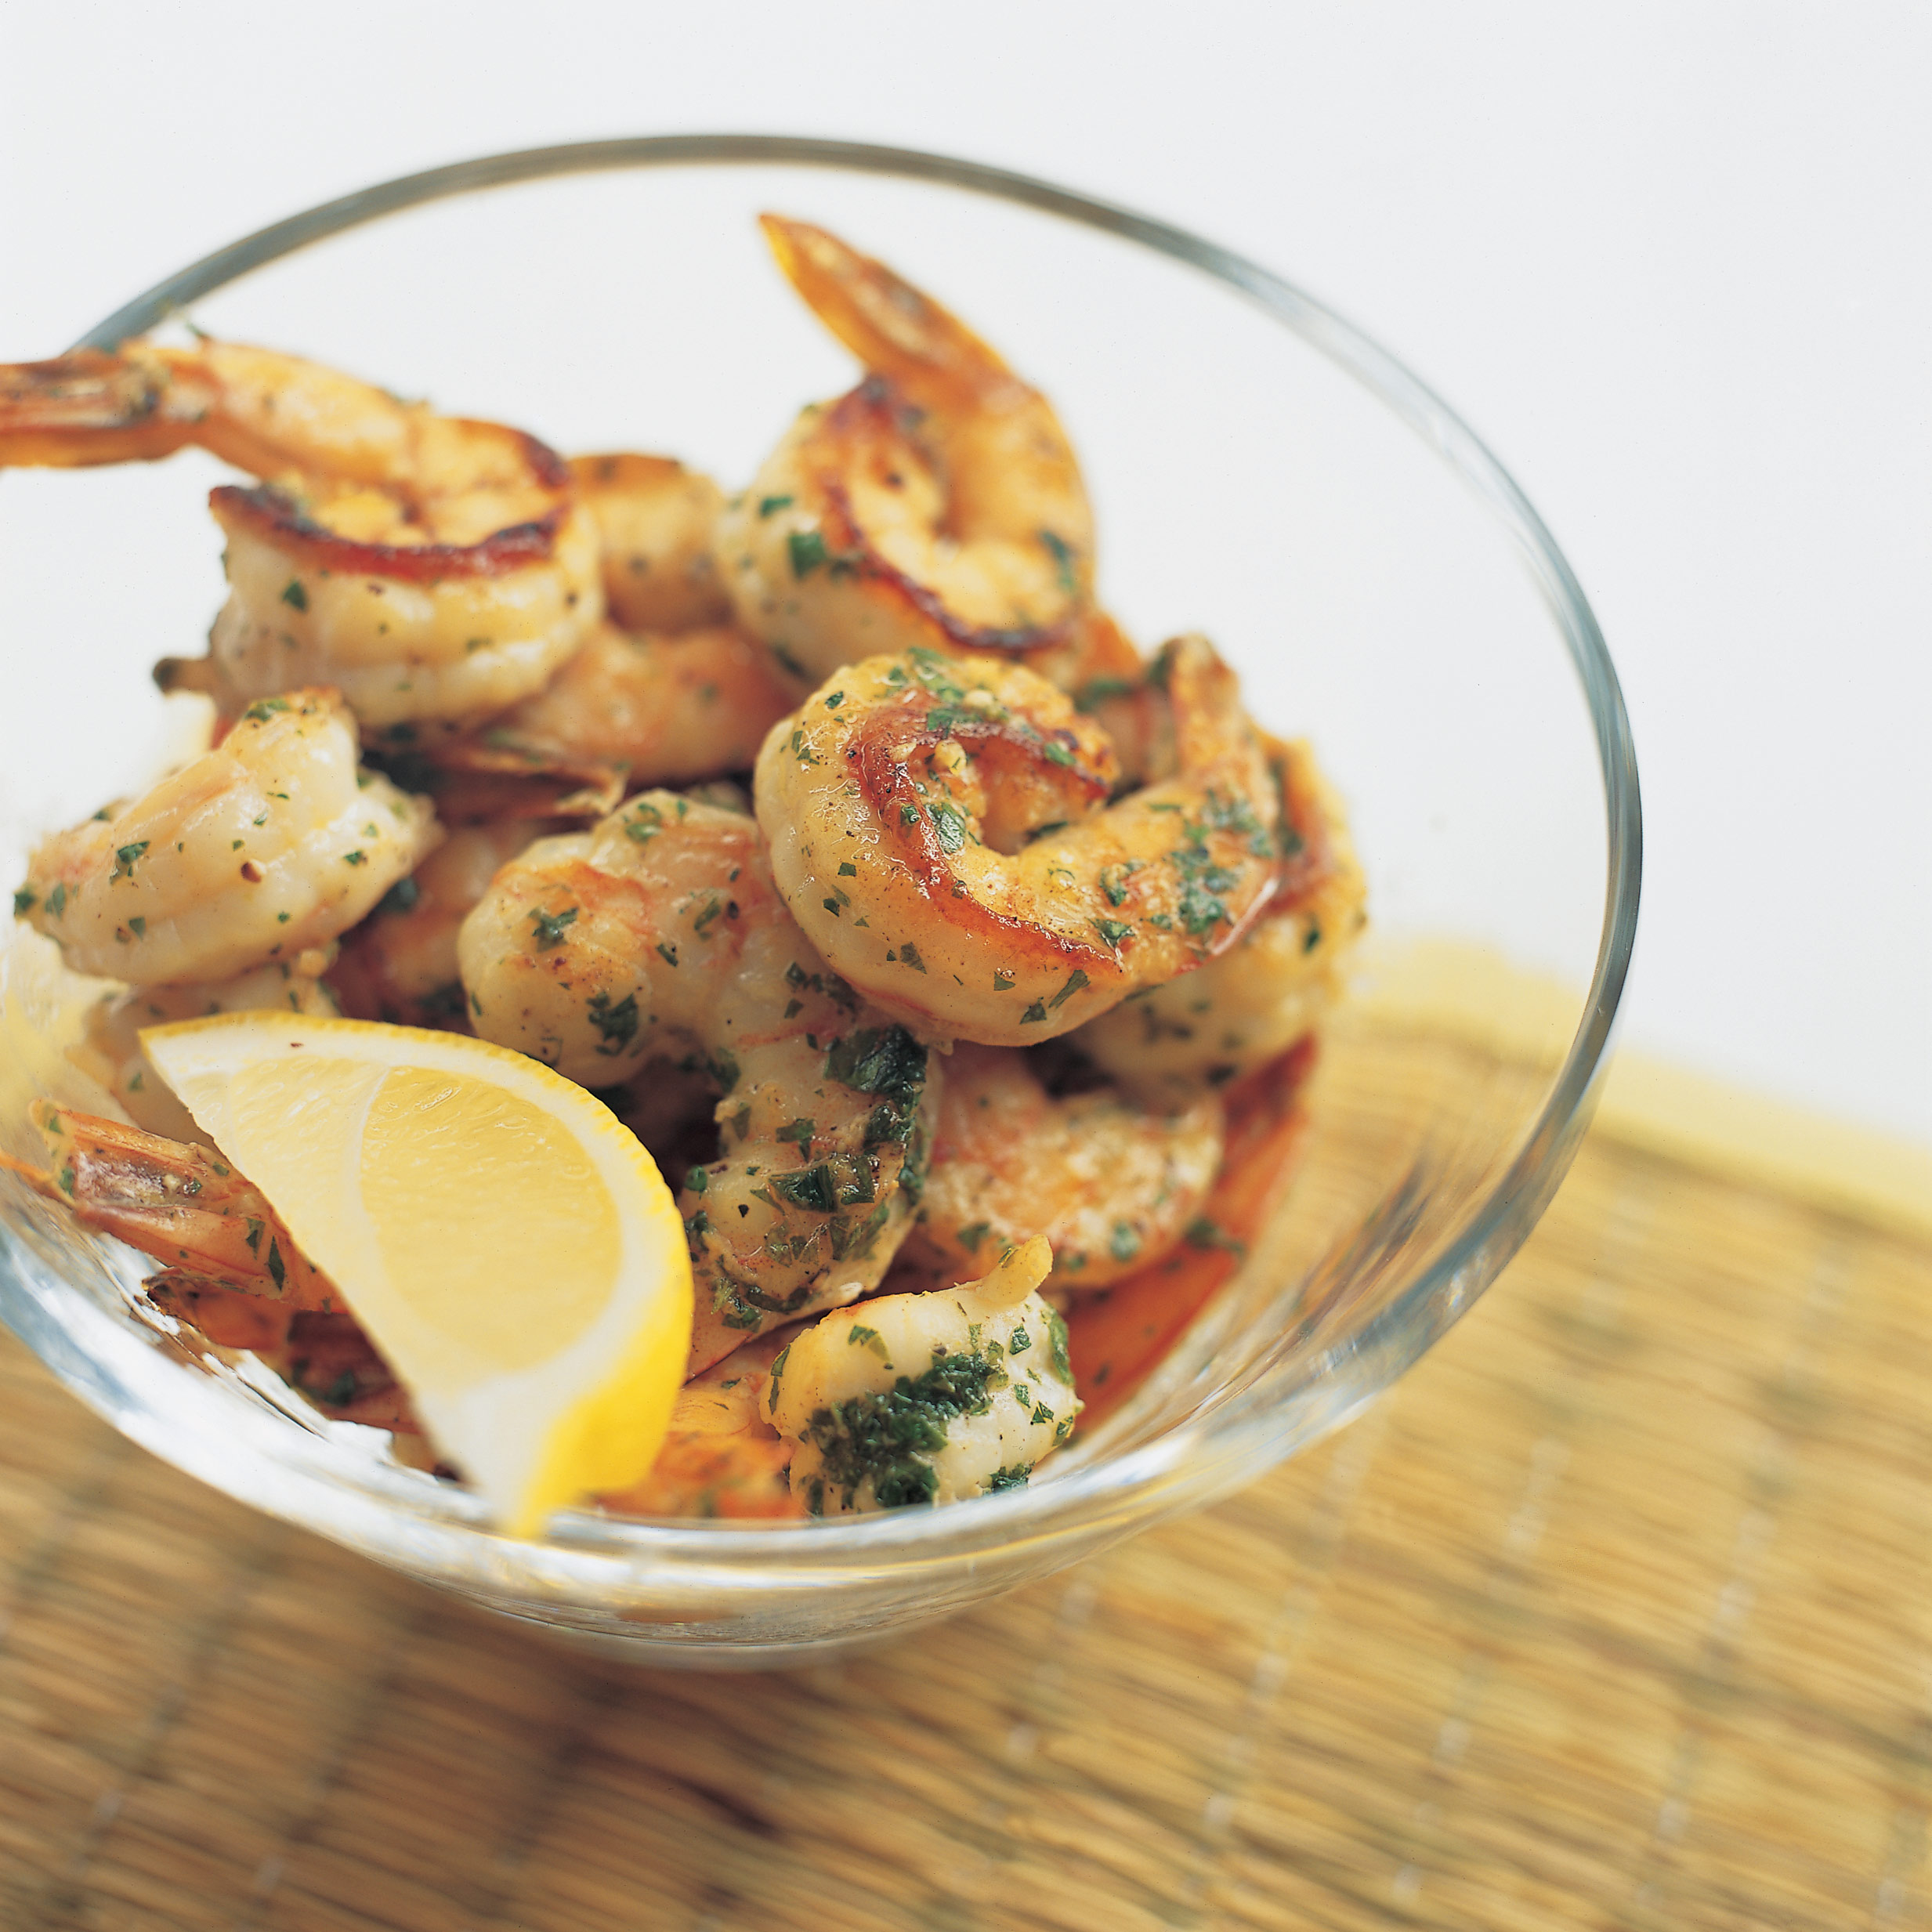 Kitchen Recipes: Pan-Seared Shrimp With Garlic-Lemon Butter Recipe